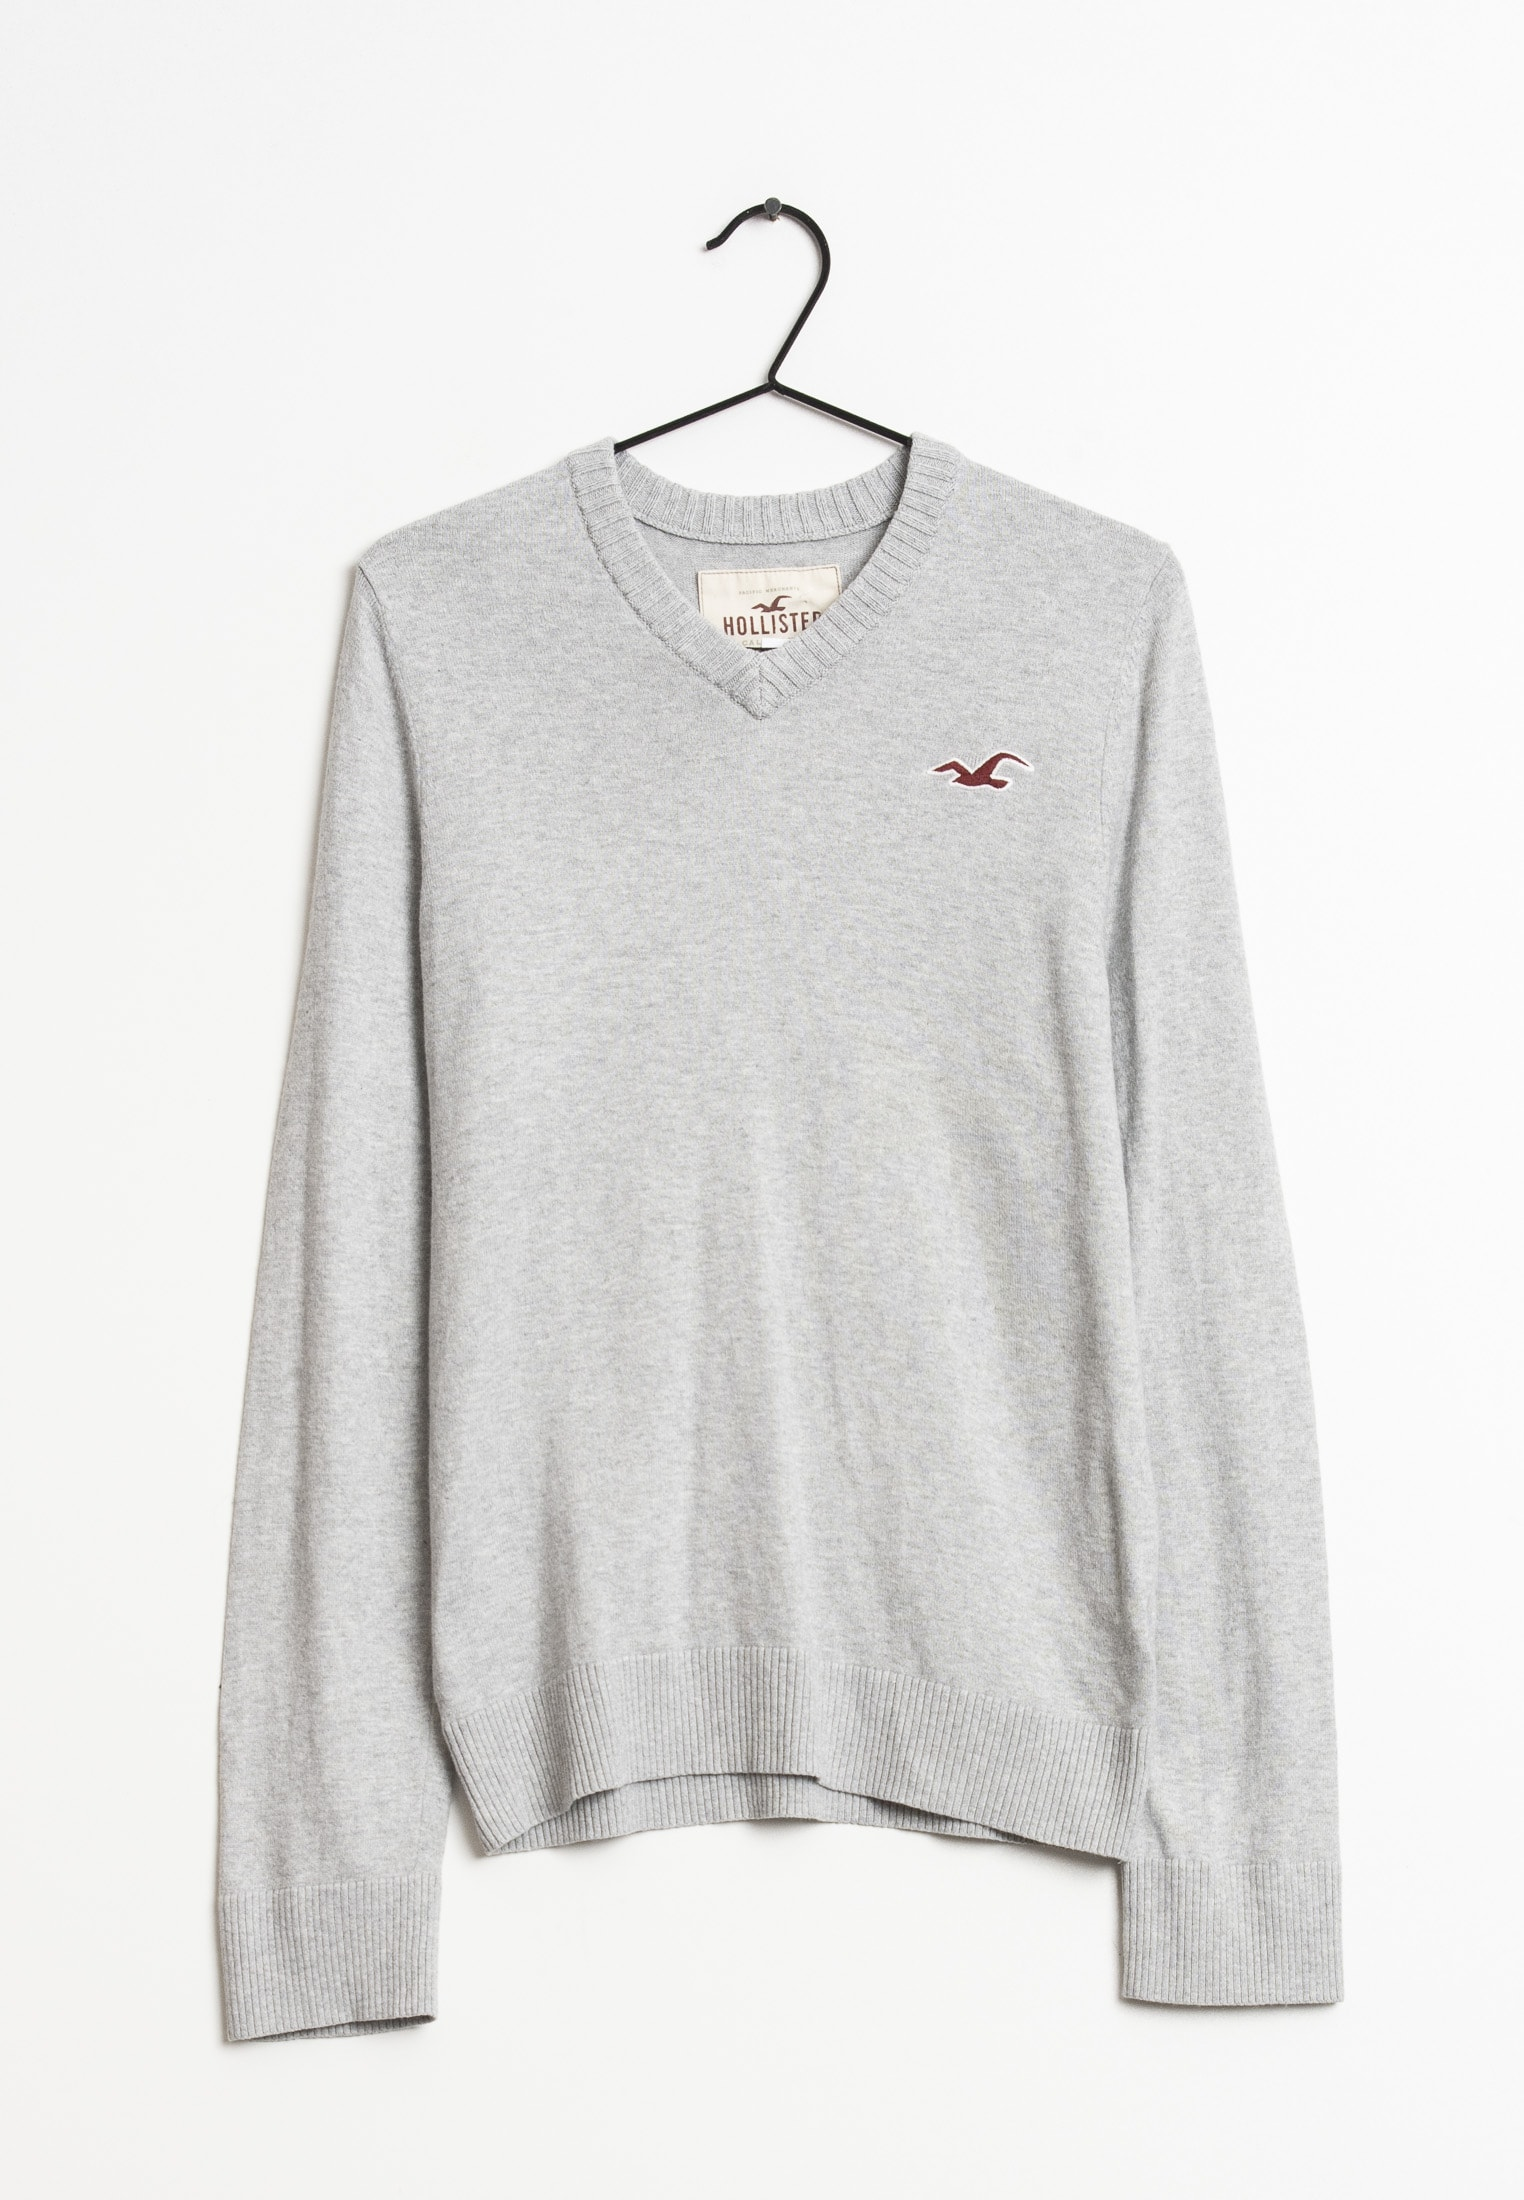 Hollister Co. Strickpullover Grau Gr.XL